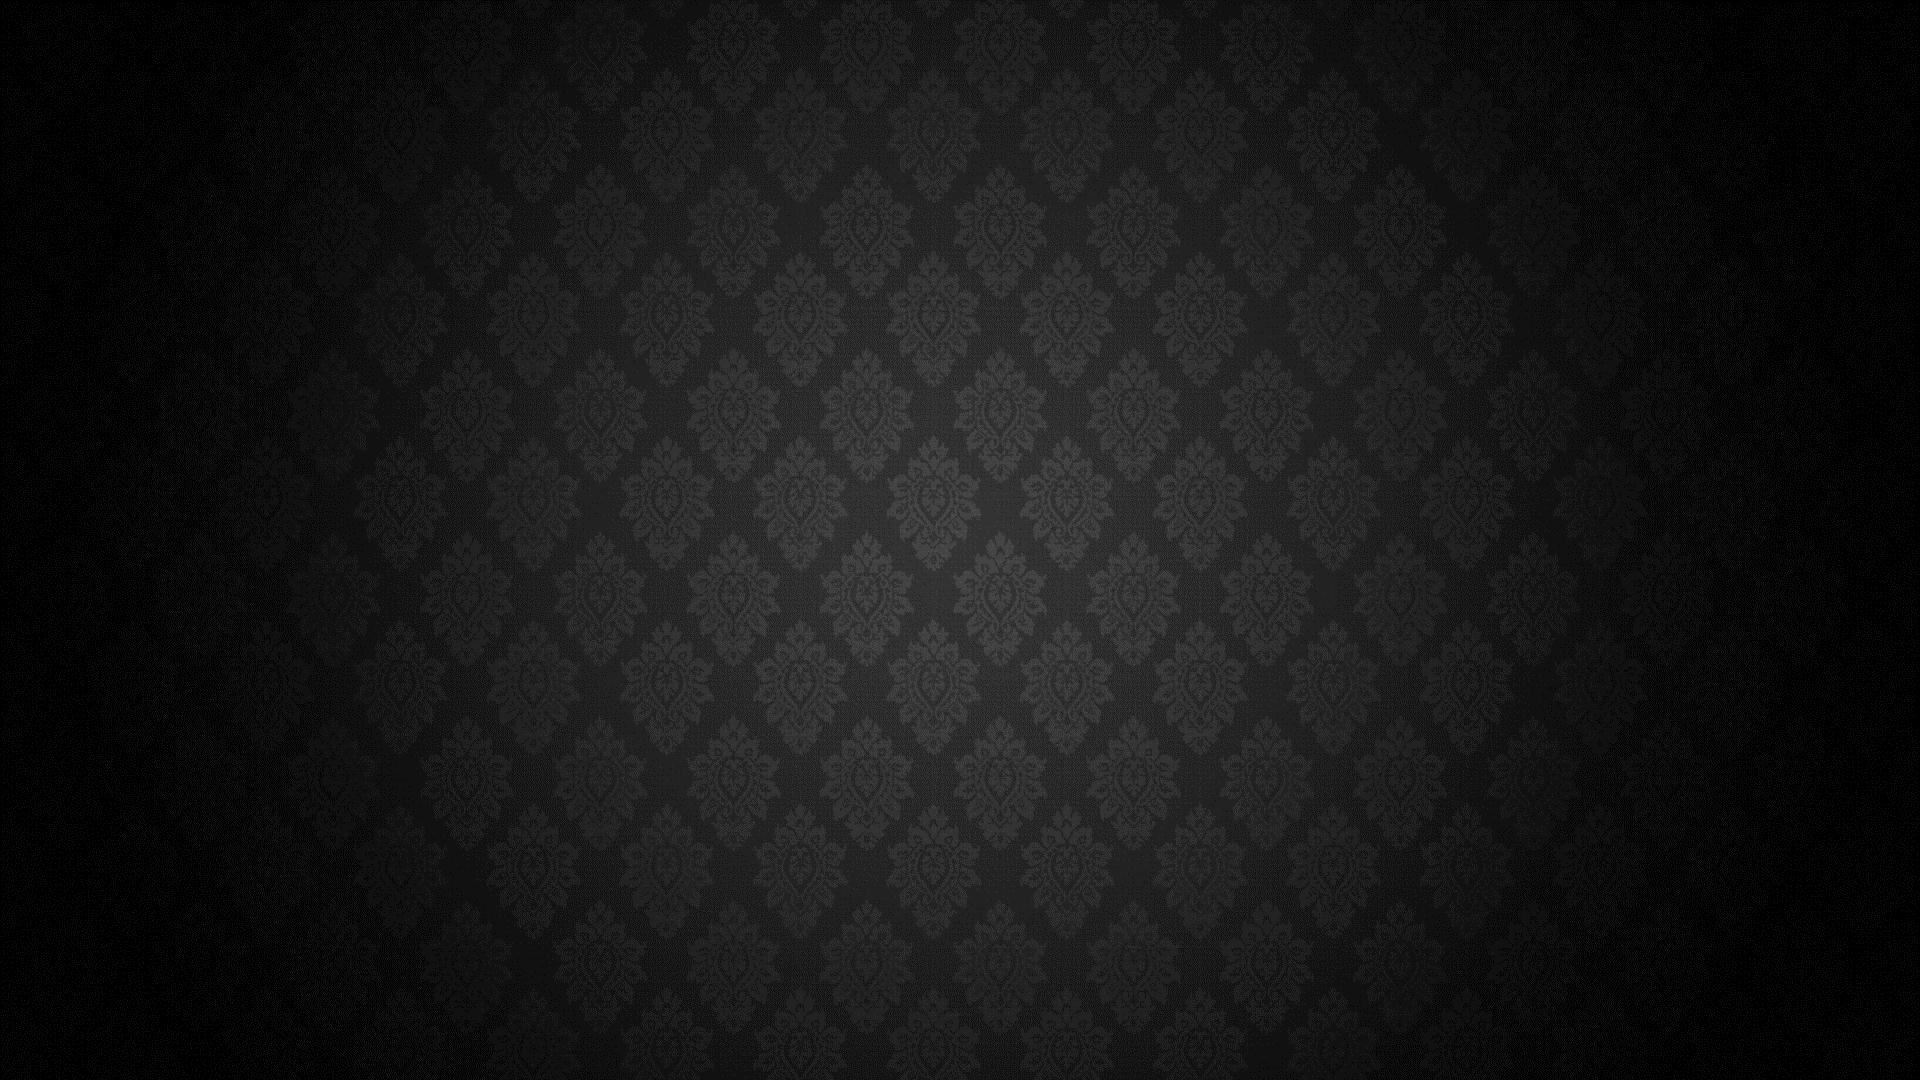 Free Background Wallpapers